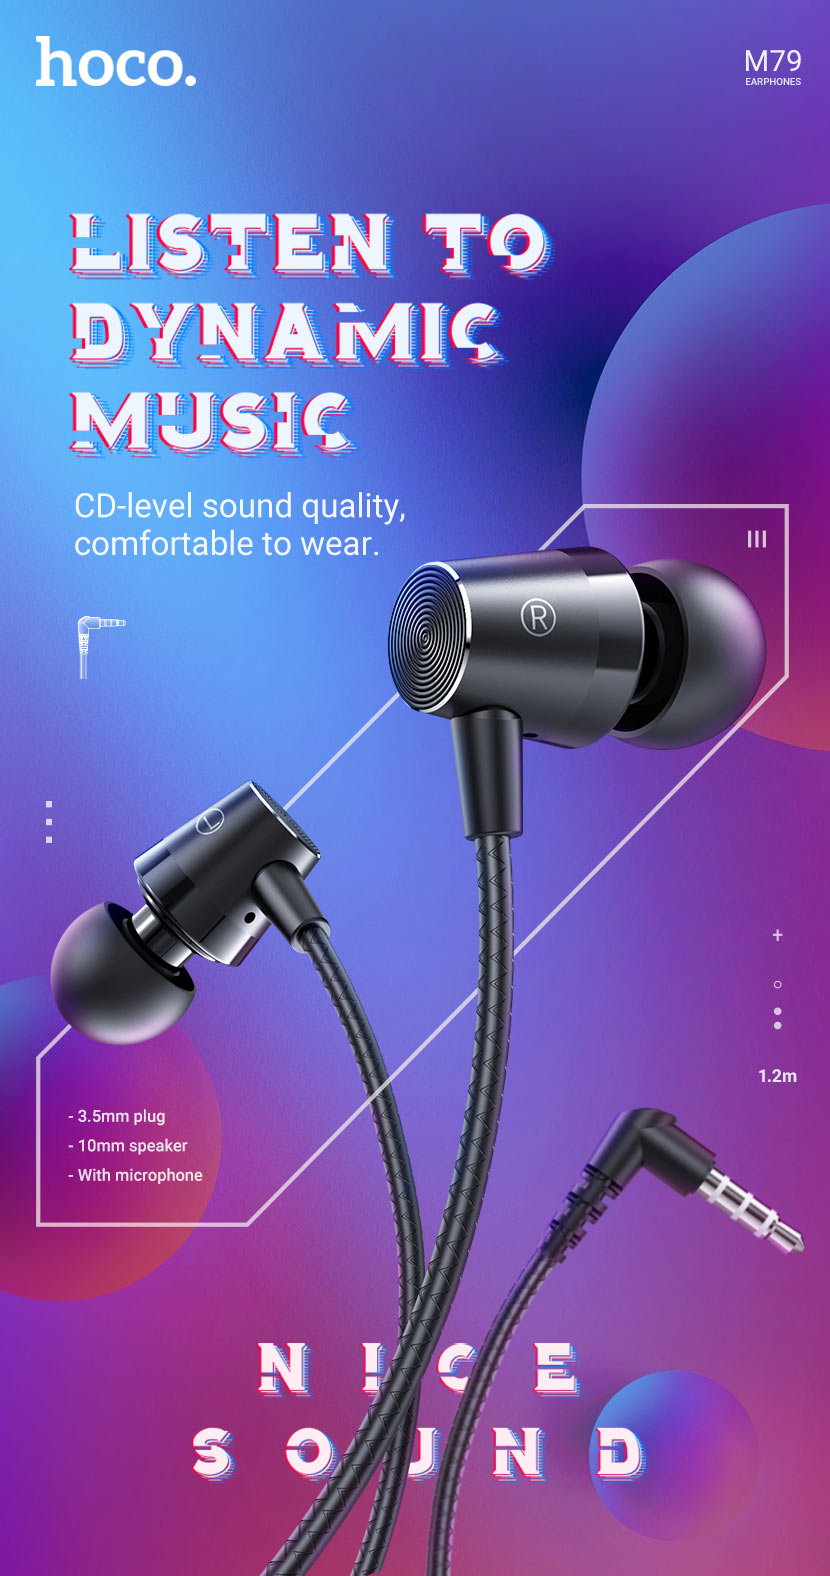 hoco news m79 cresta universal earphones with microphone en